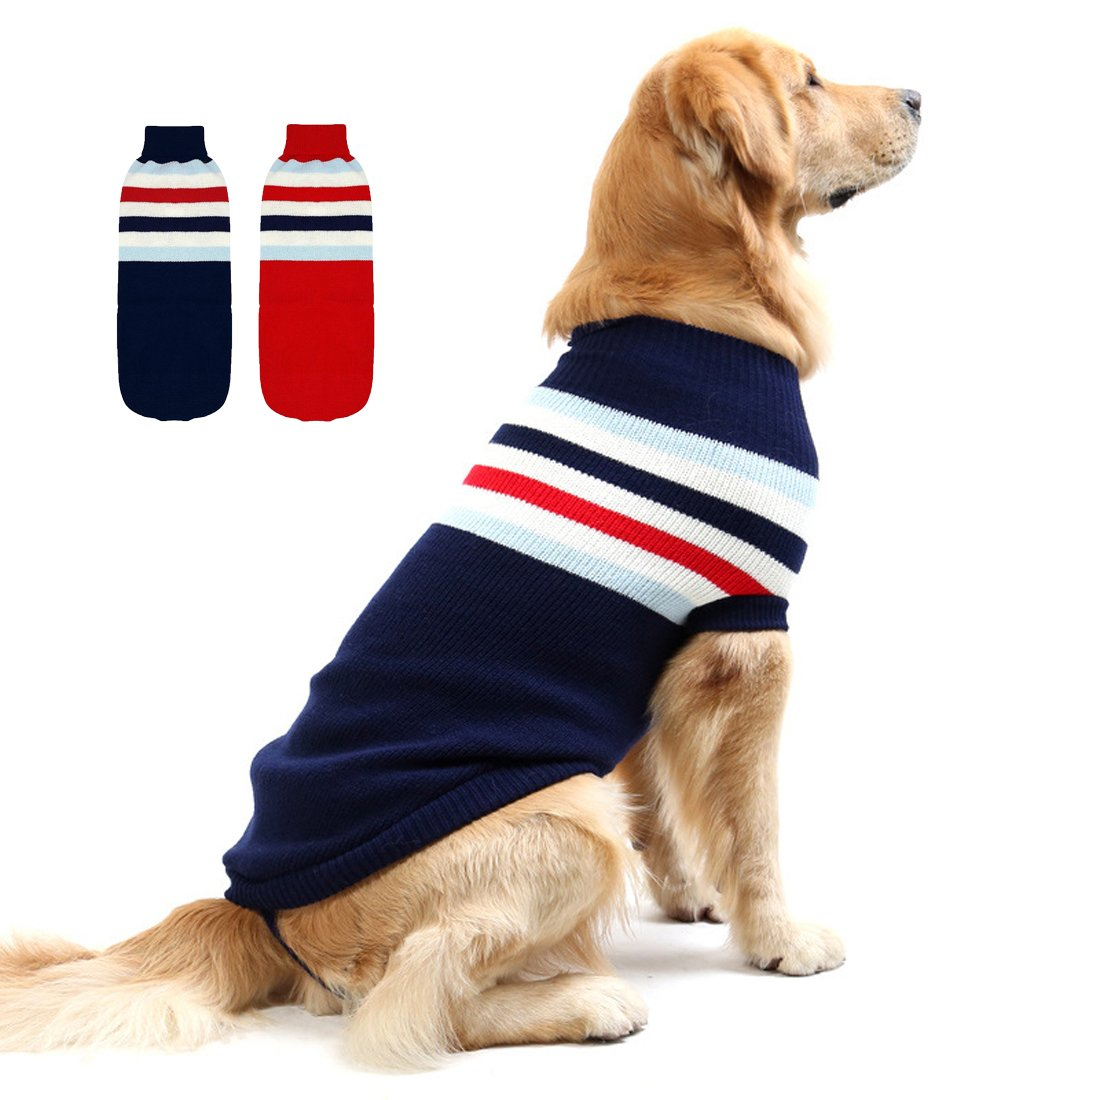 GabeFish Fashion Small Medium Large Dog Striped Warm Knitted Sweater for Cold Weather Spring Winter Clothes Jumper Navy 5X-Large